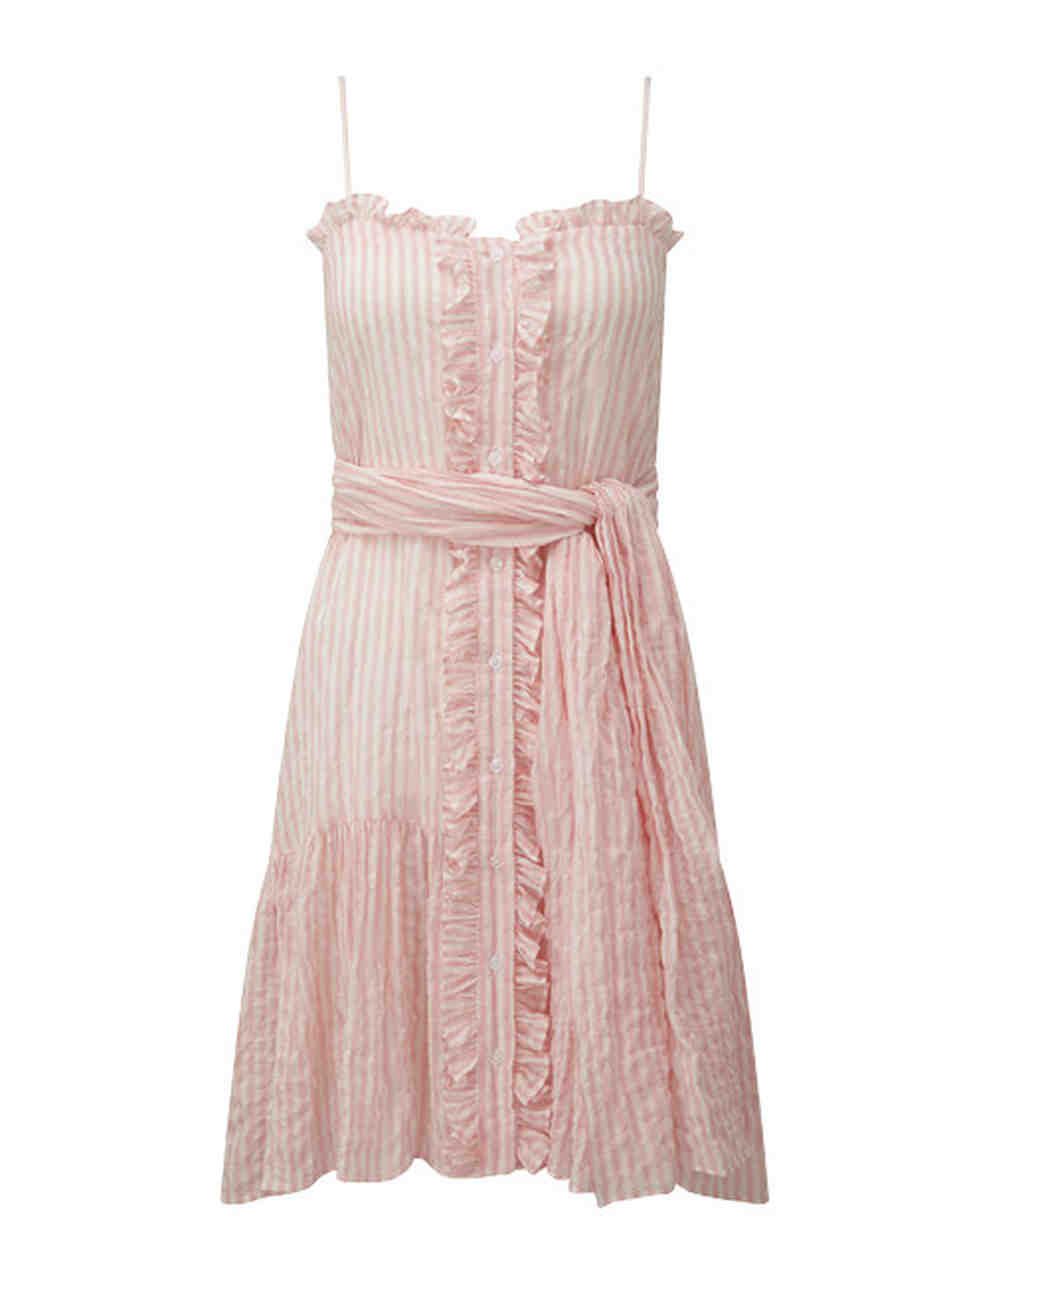 pink and white strapped short engagement party dress